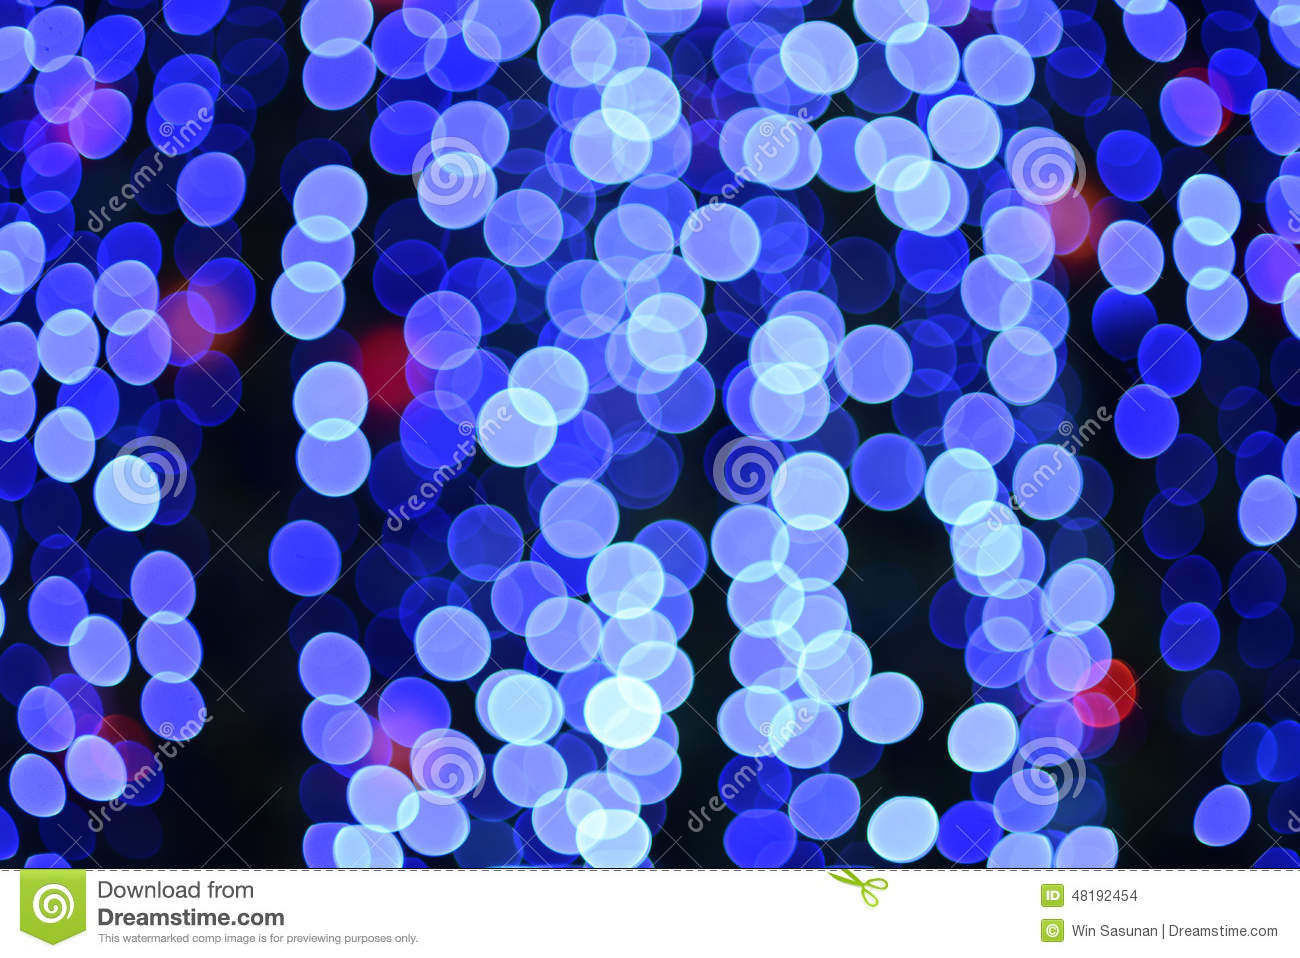 abstract background bokeh images - photo #41